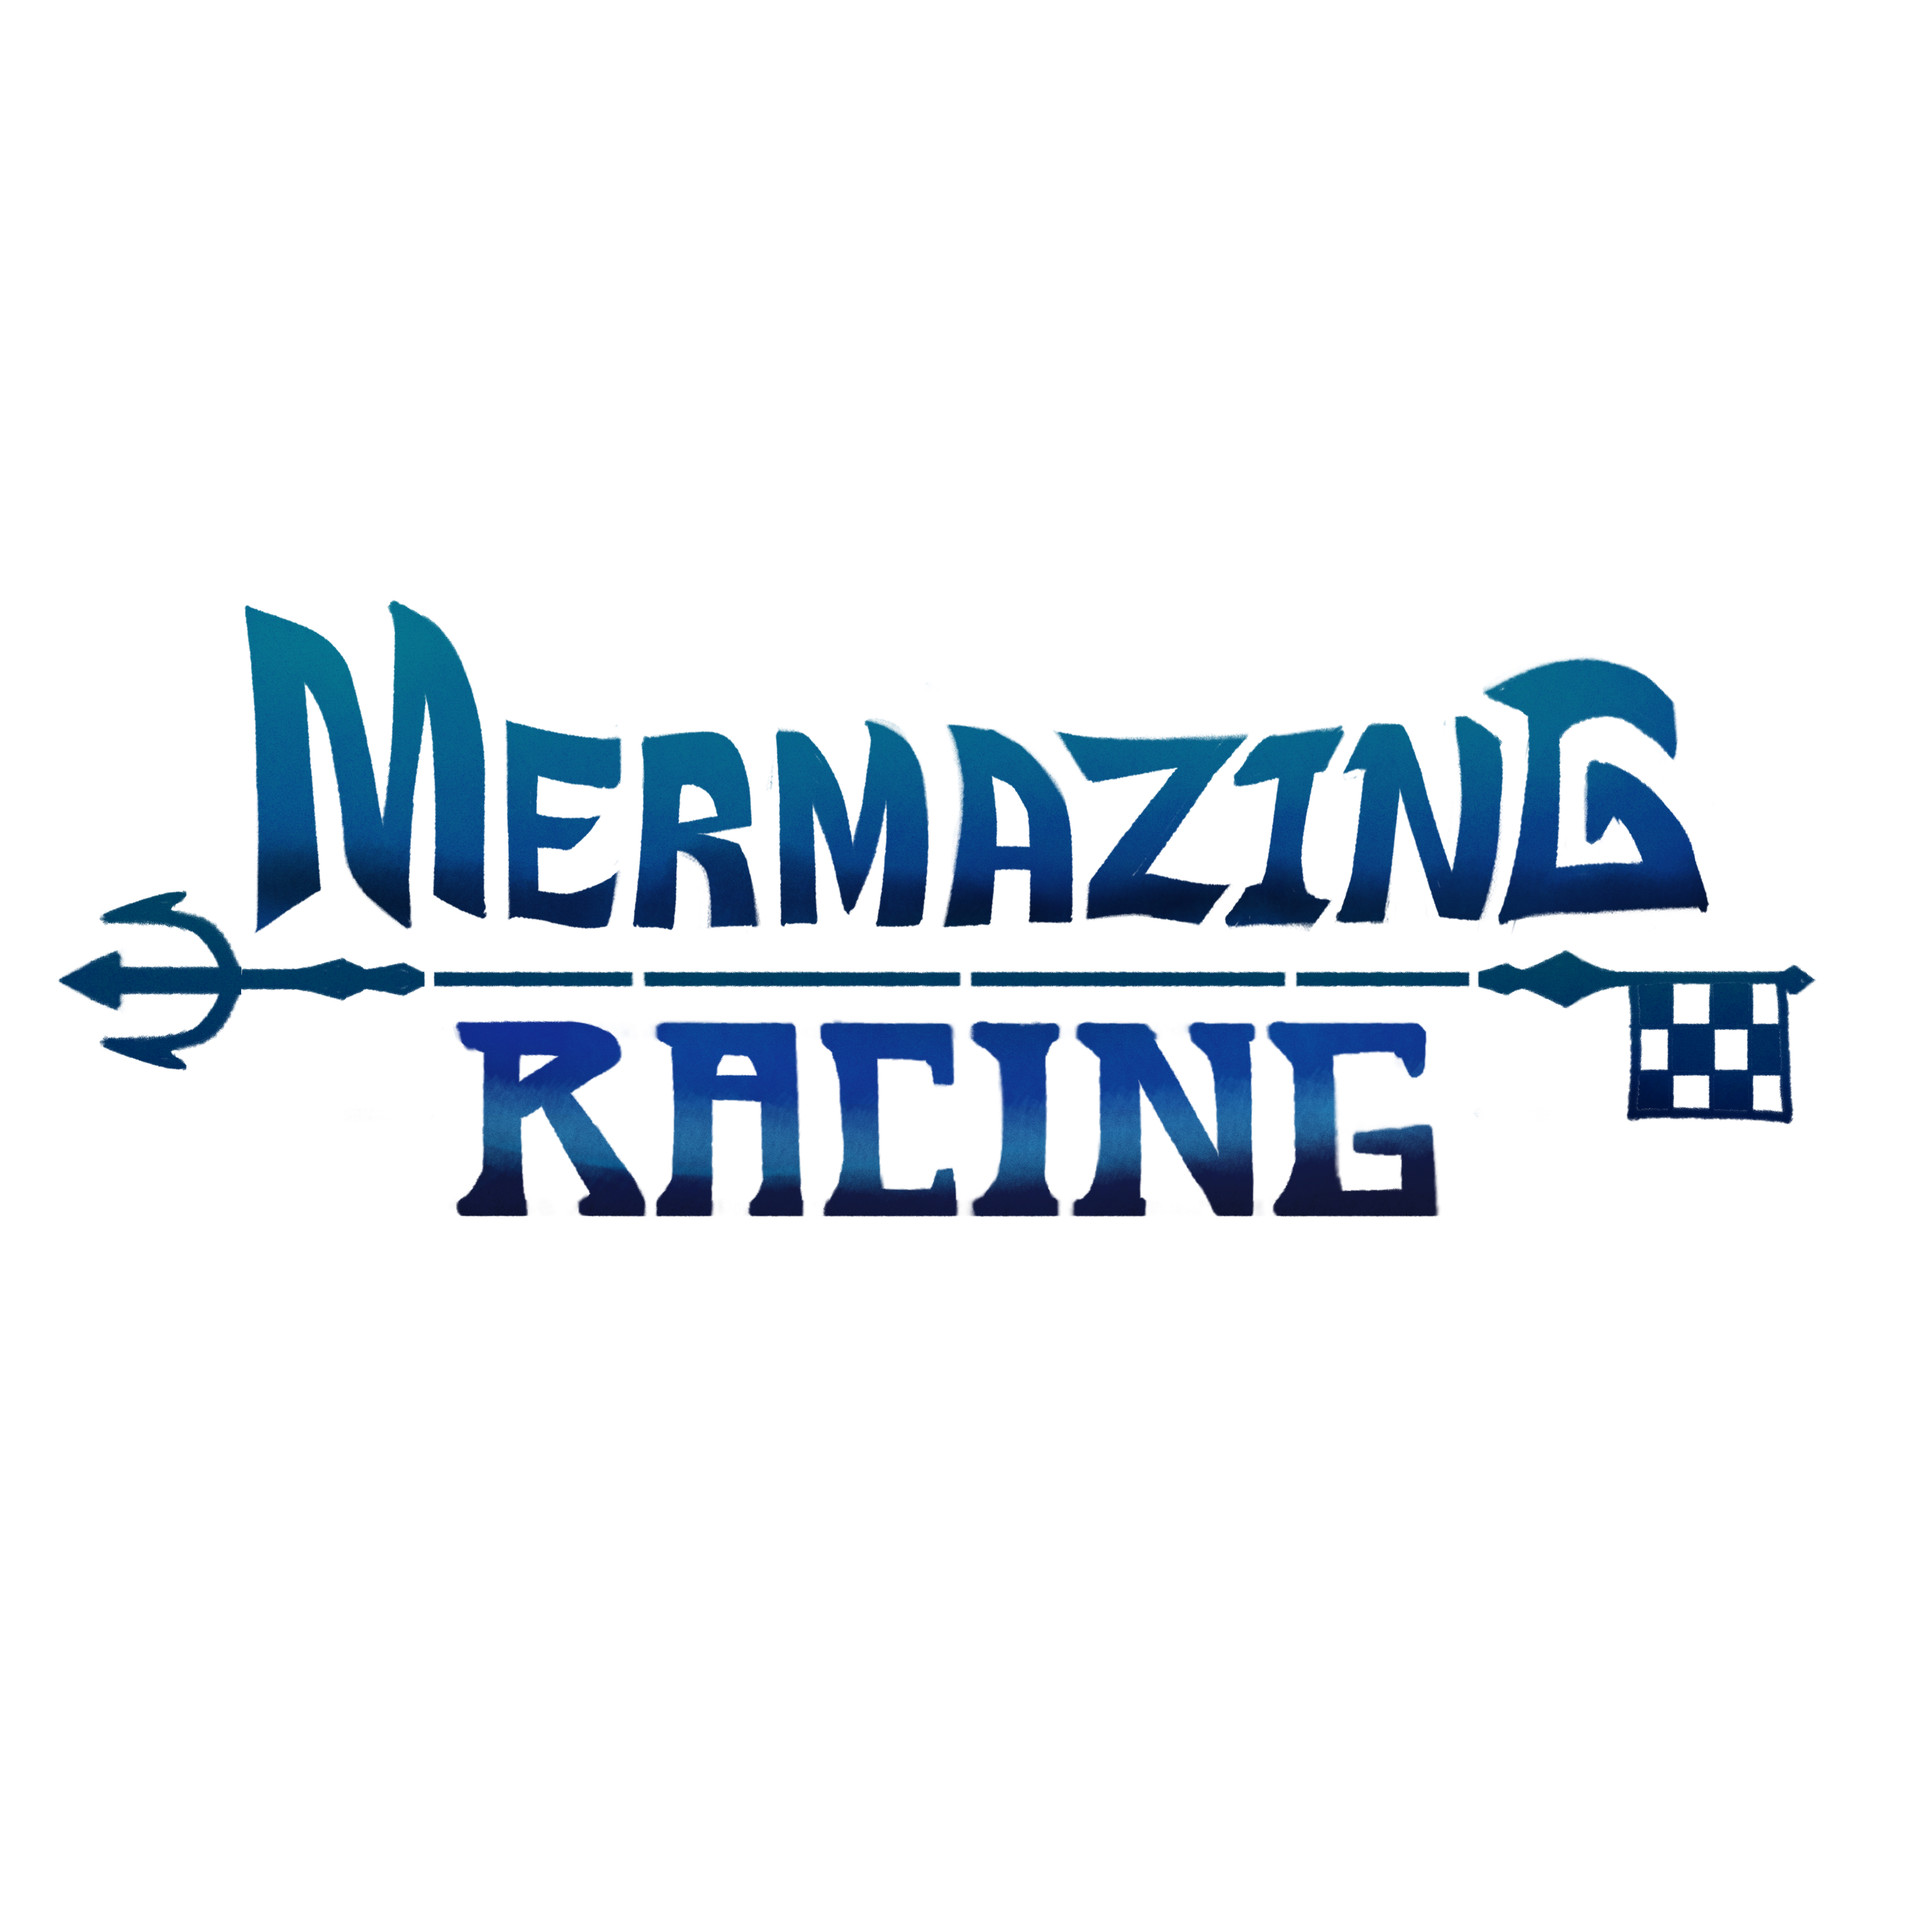 Luigi lucarelli mermazing racing logo